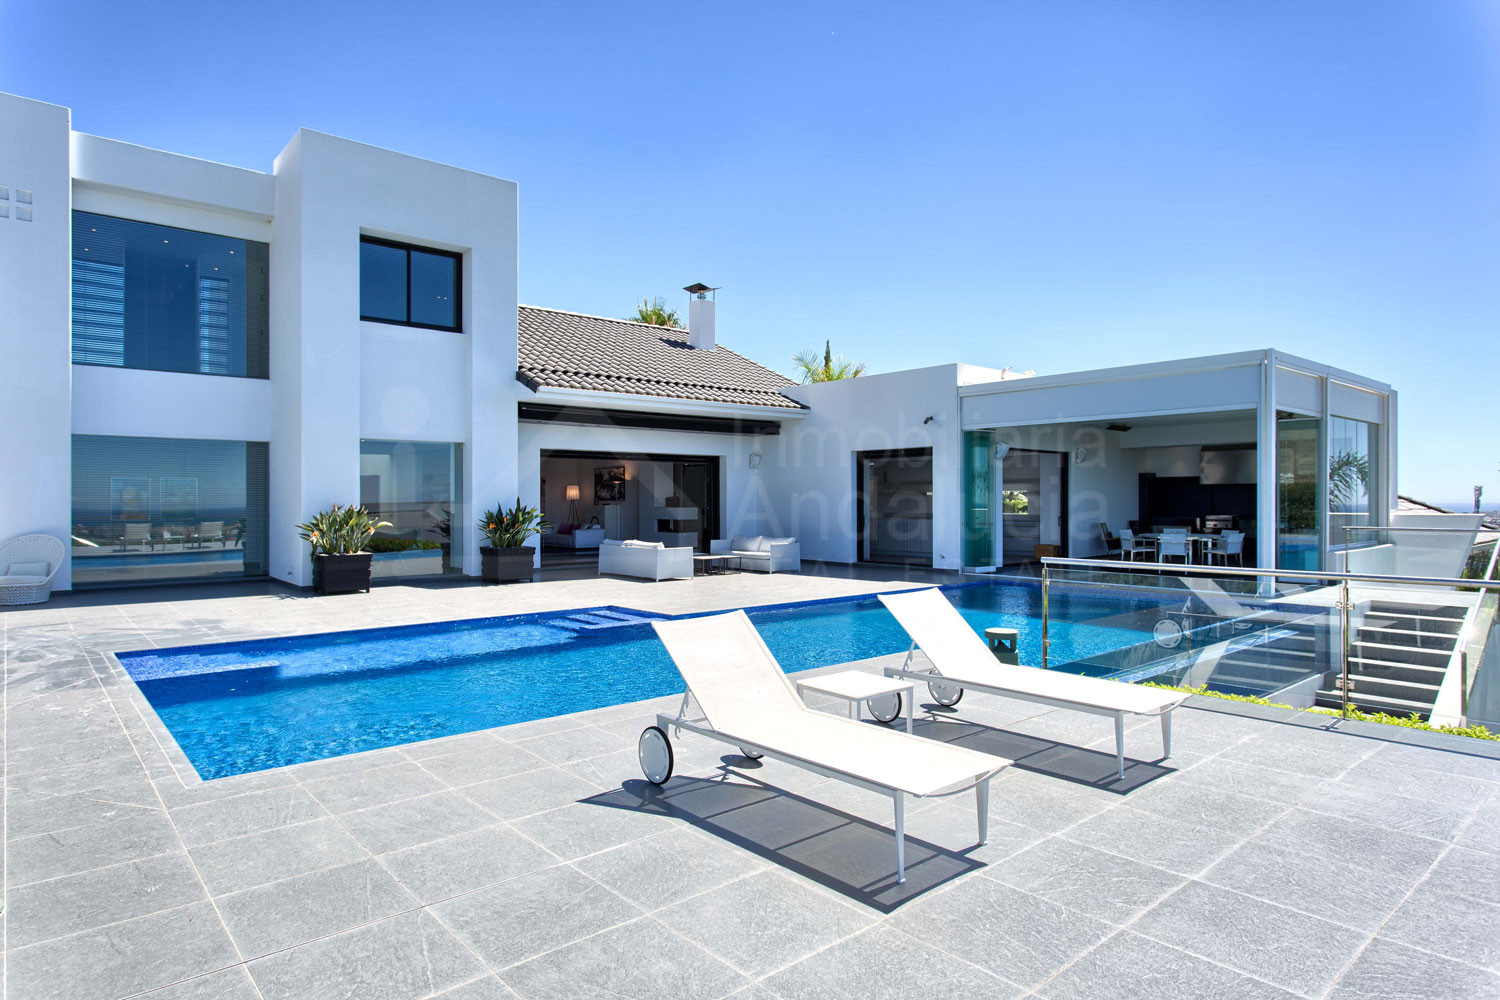 Top quality contemporary 5 bedroom south facing villa with stunning views for sale in Los Flamingos, Benahavís